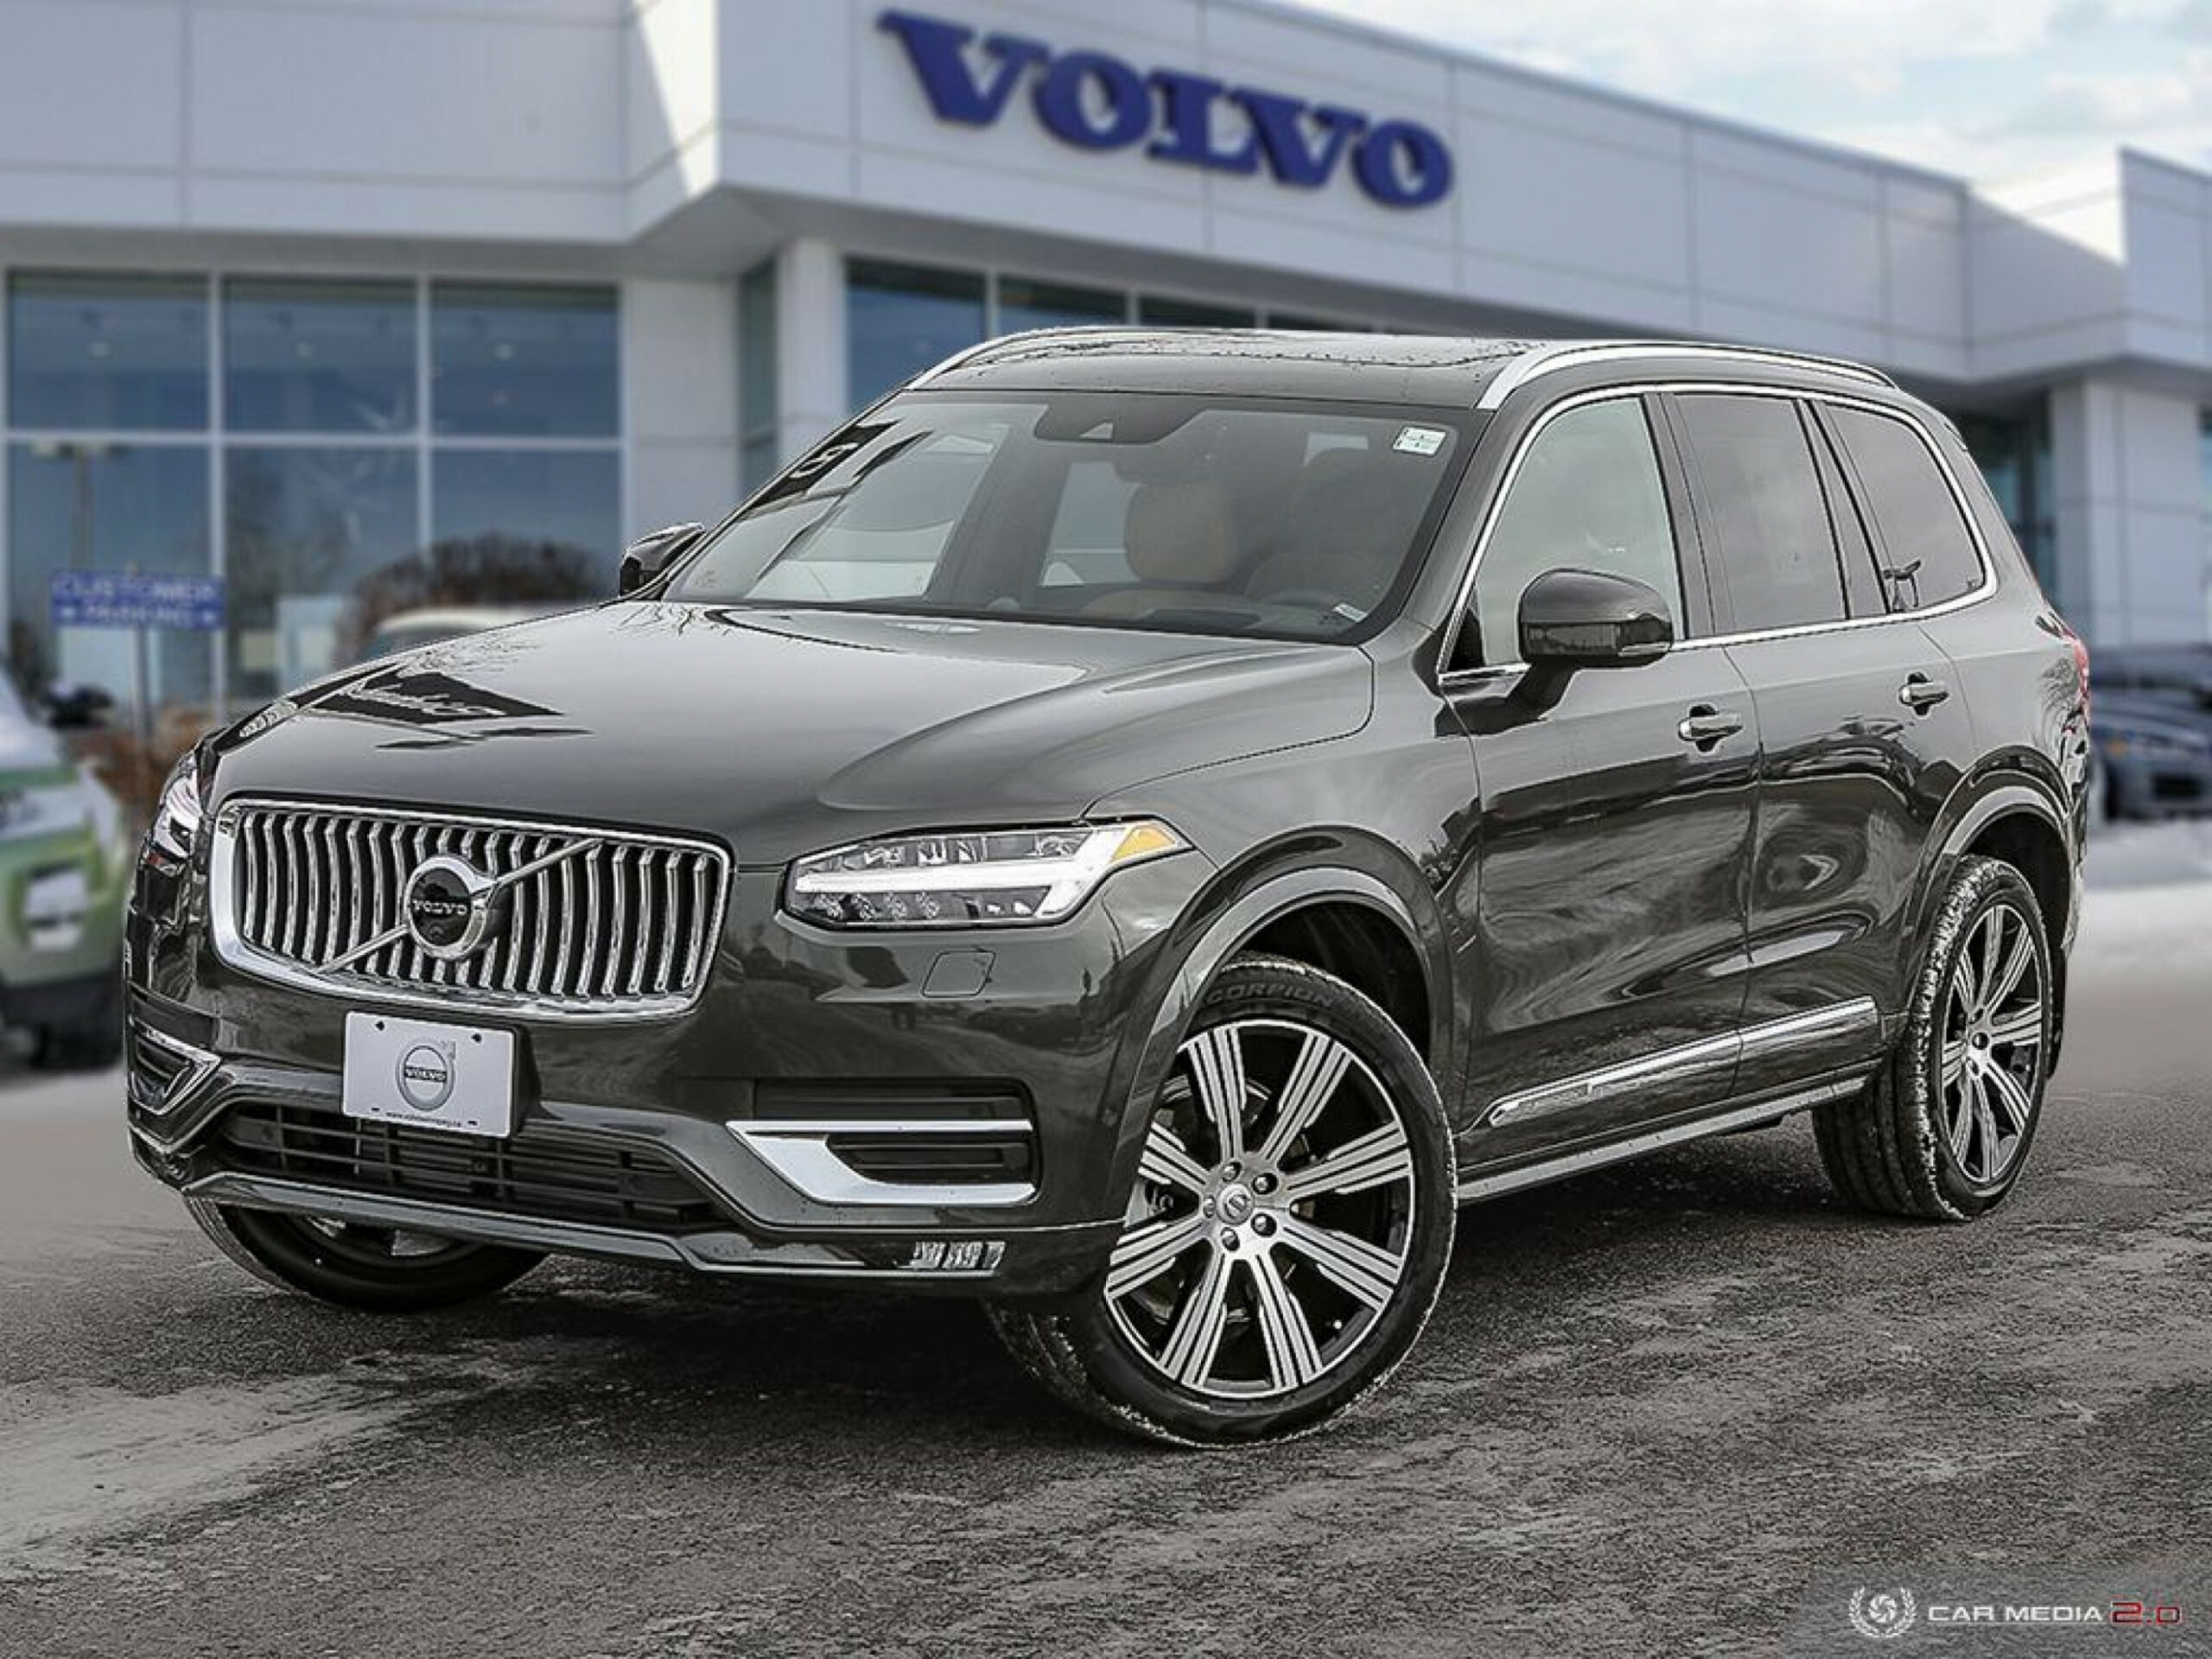 NEW 11 VOLVO XC11 INSCRIPTION MAXIMUM PERFORMANCE W/ MINIMAL  ENVIRONMENTAL IMPACT | AWD